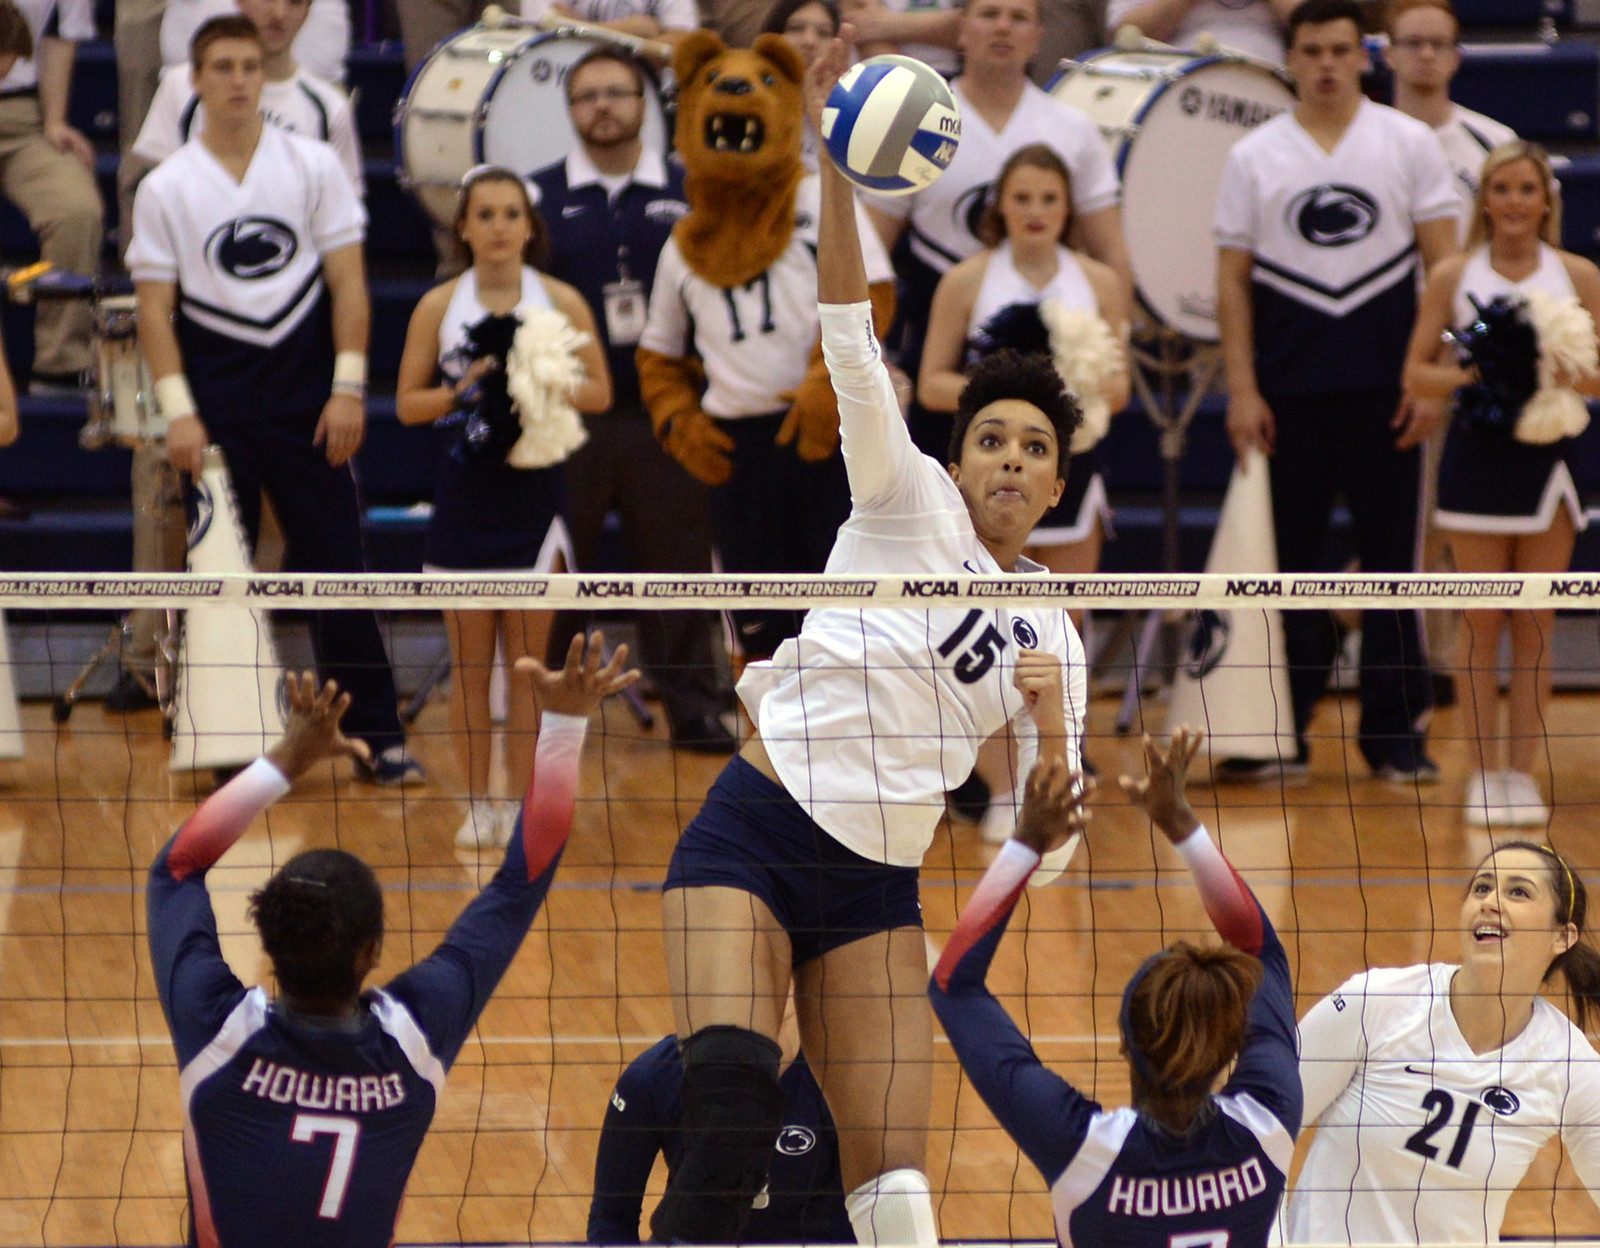 Volleyball Approach: Penn State middle hitter Haleigh Washington attacks against Howard (Penn State News)